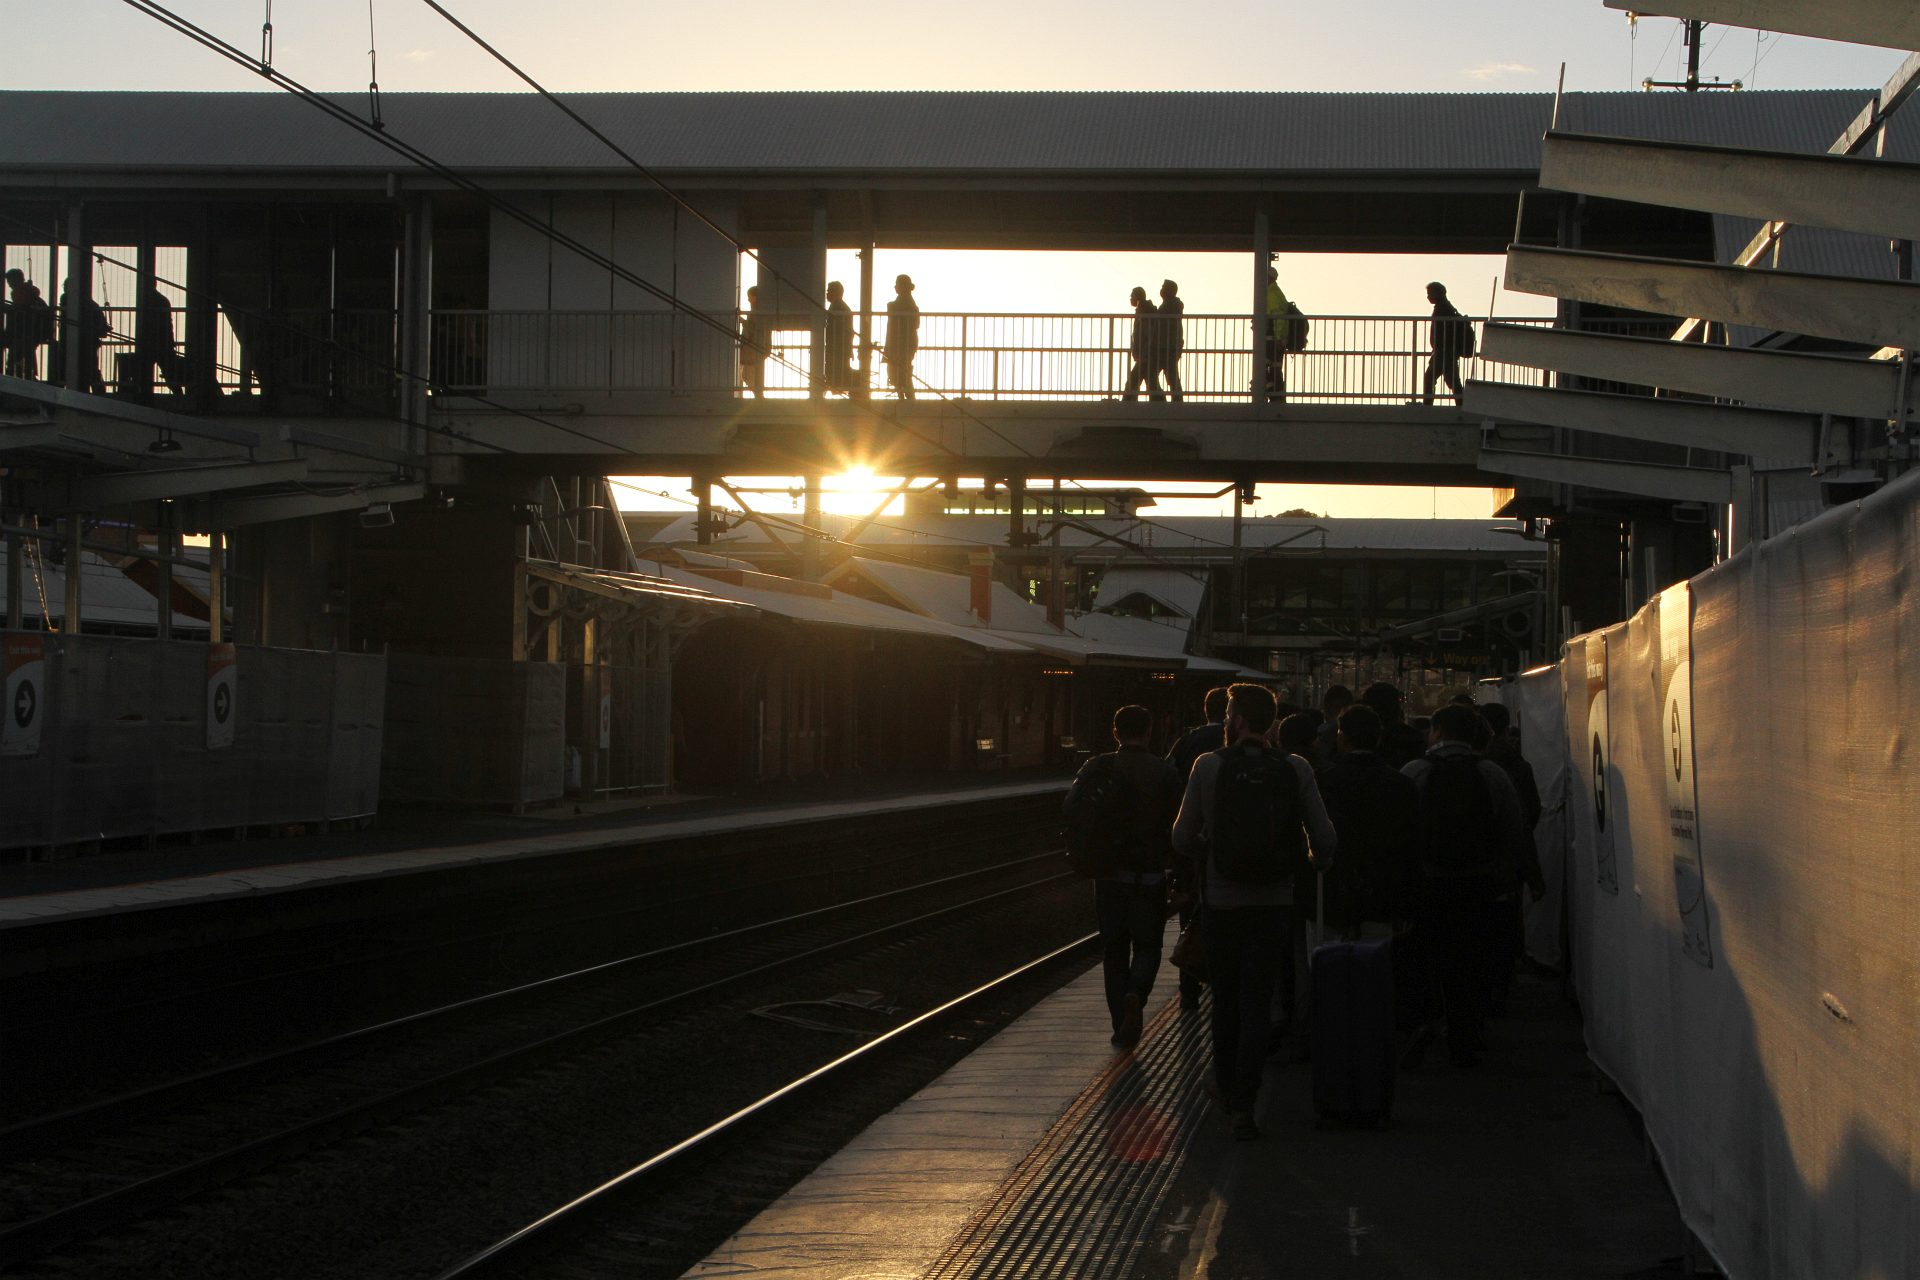 Evening commuters at Lidcombe station ...